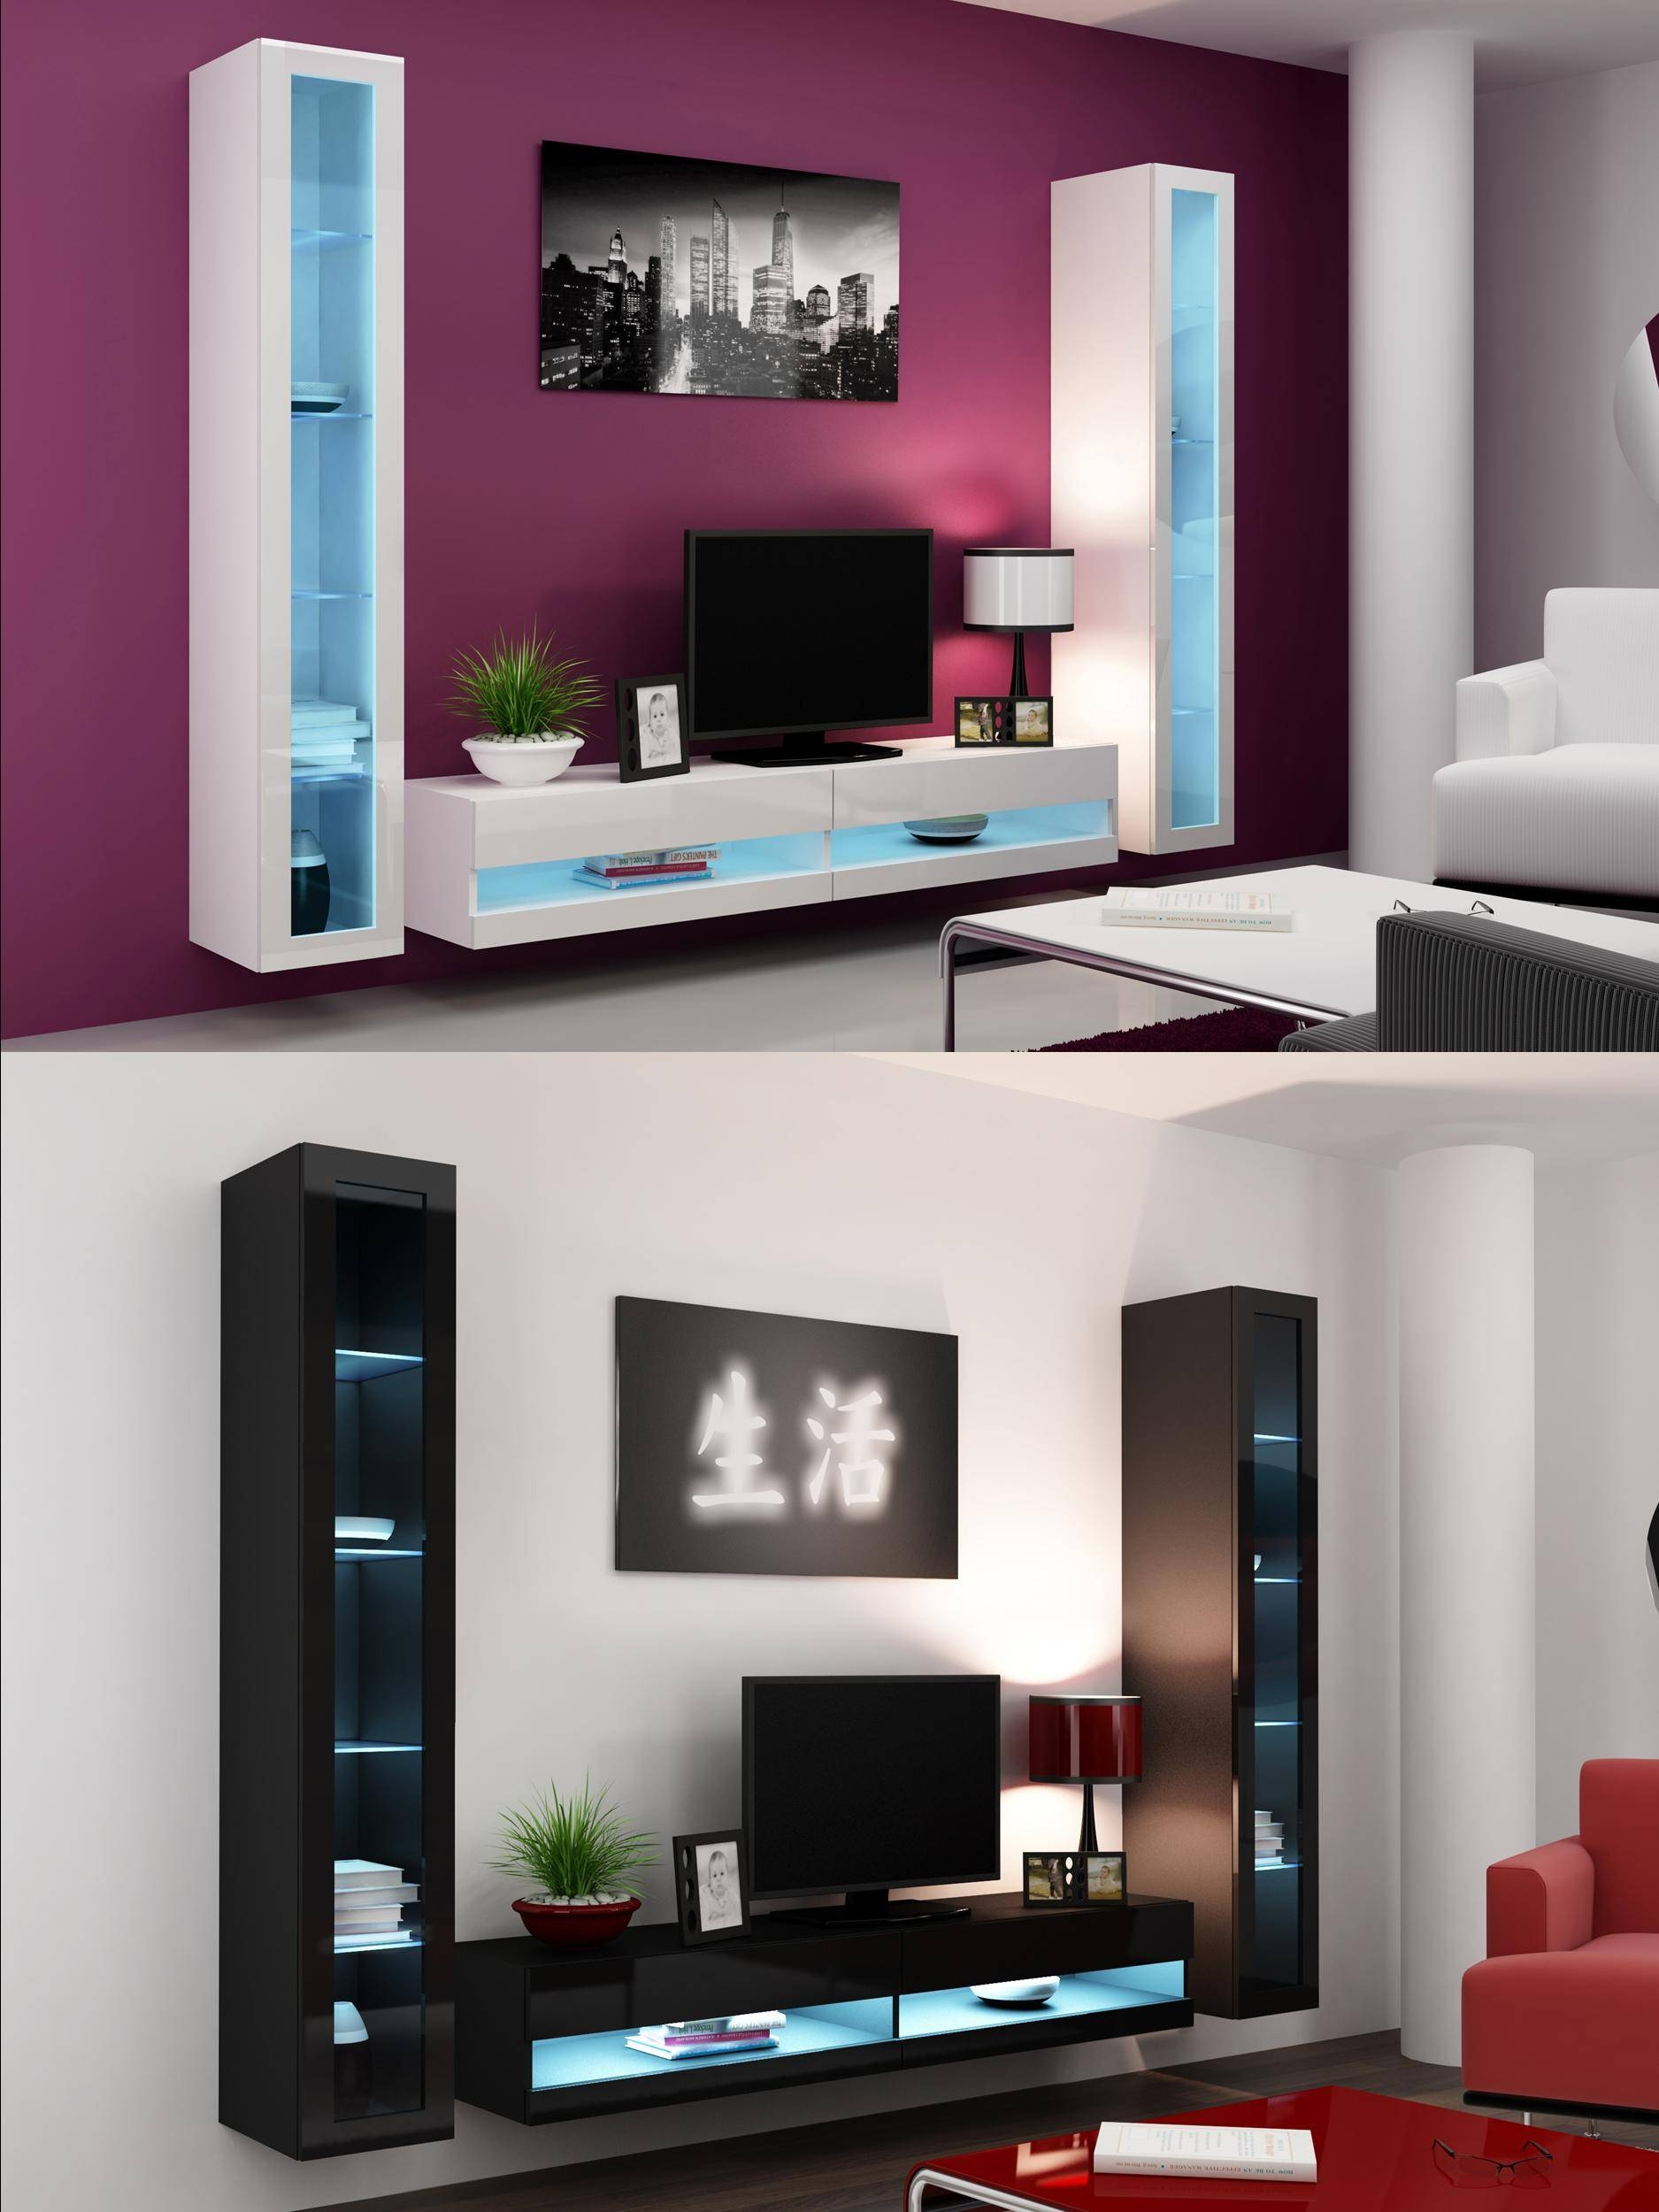 High Gloss Living Room Set With Led Lights, Tv Stand, Wall Mounted pertaining to High Gloss Tv Cabinets (Image 9 of 15)